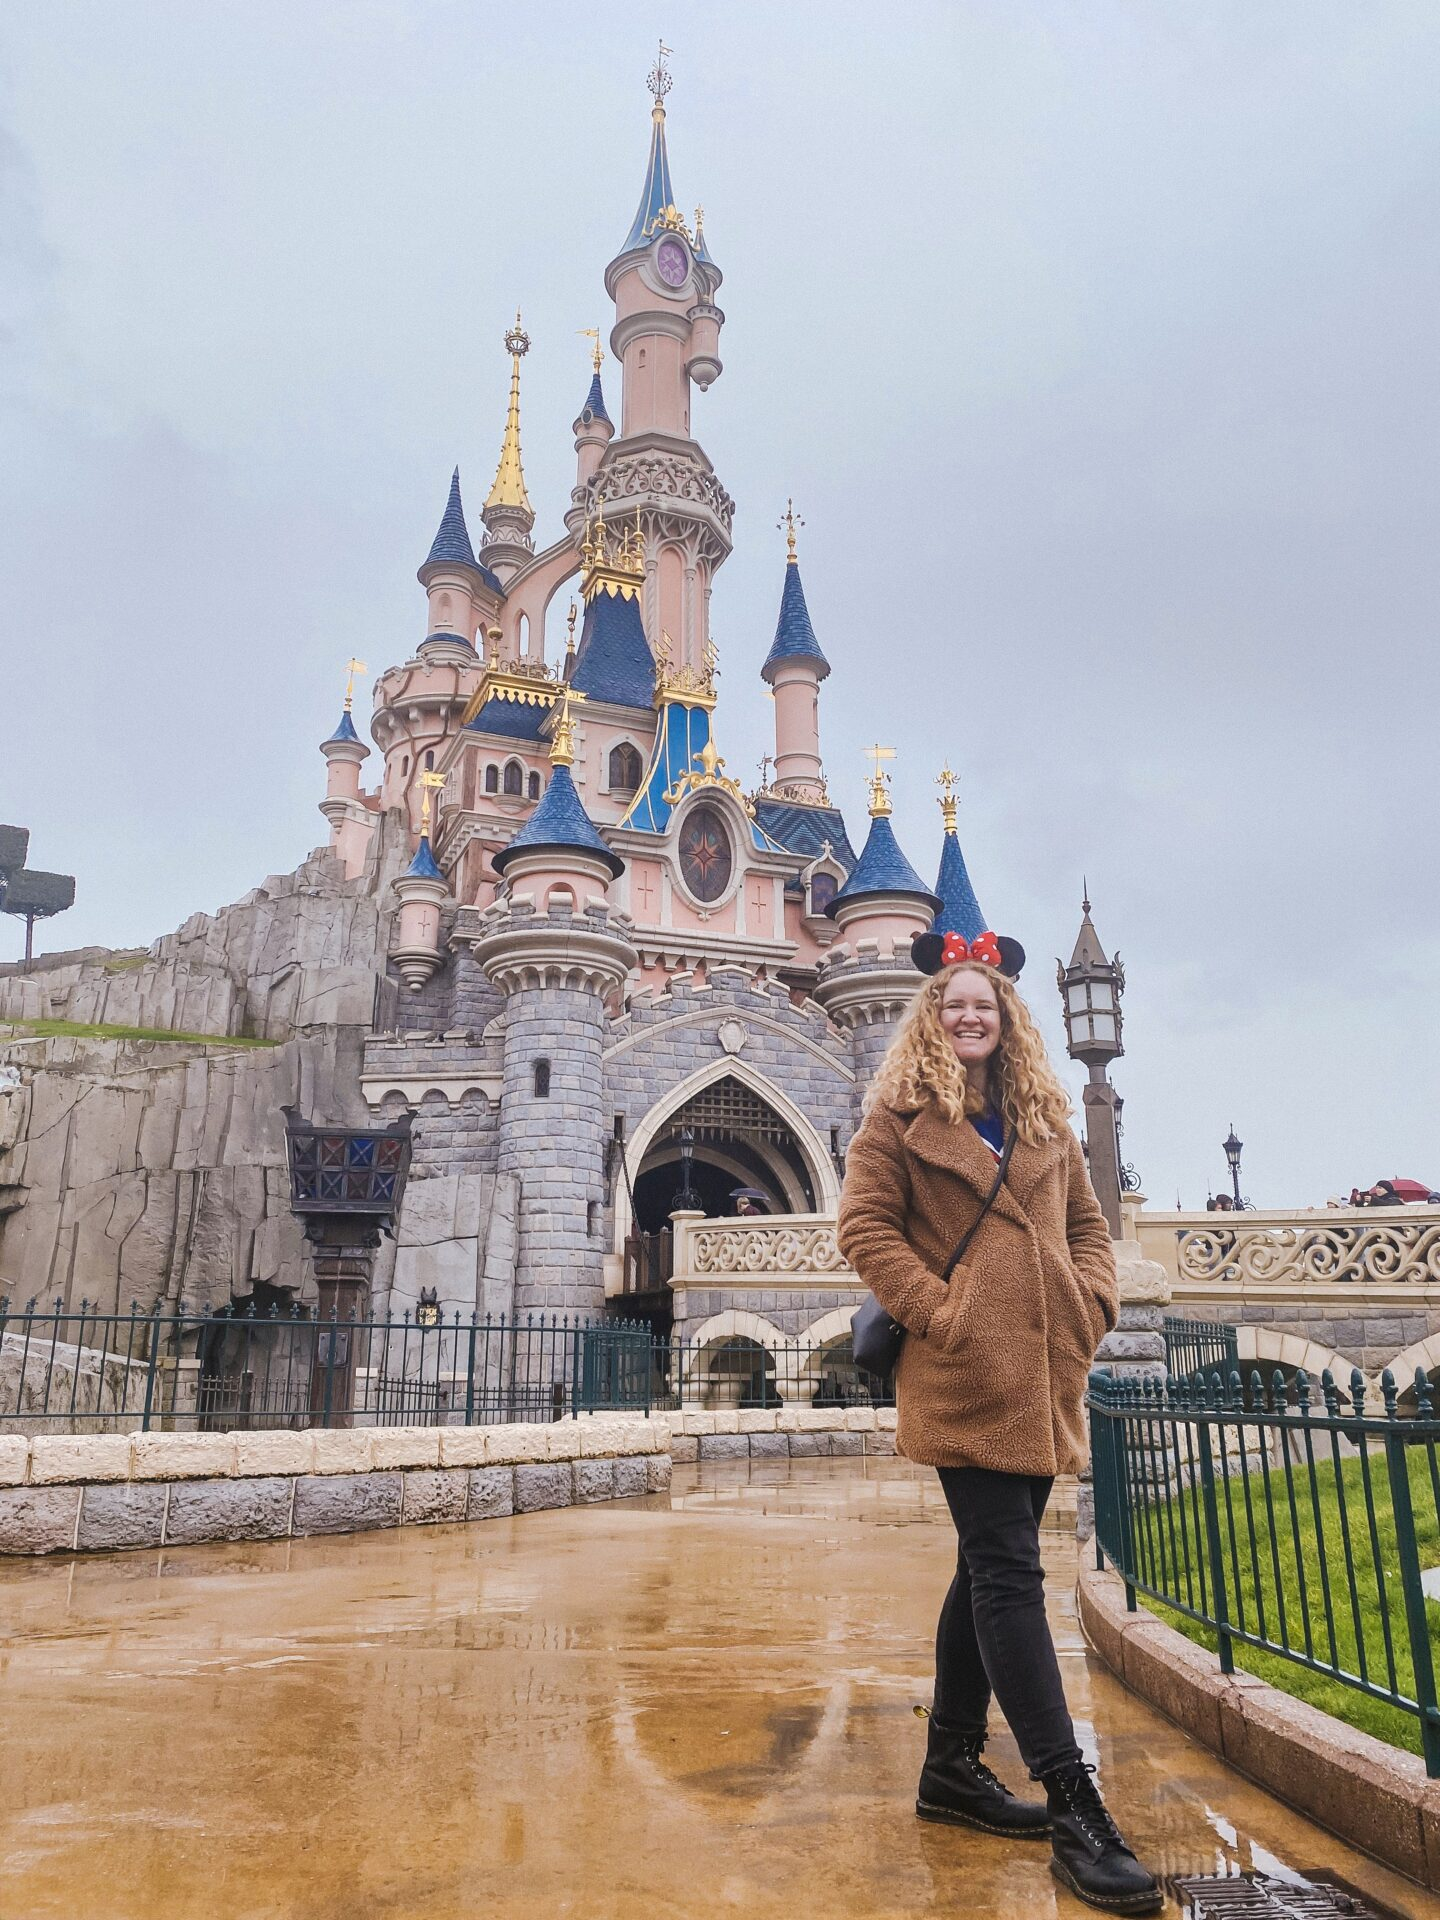 Sophie at the castle in Disneyland Paris